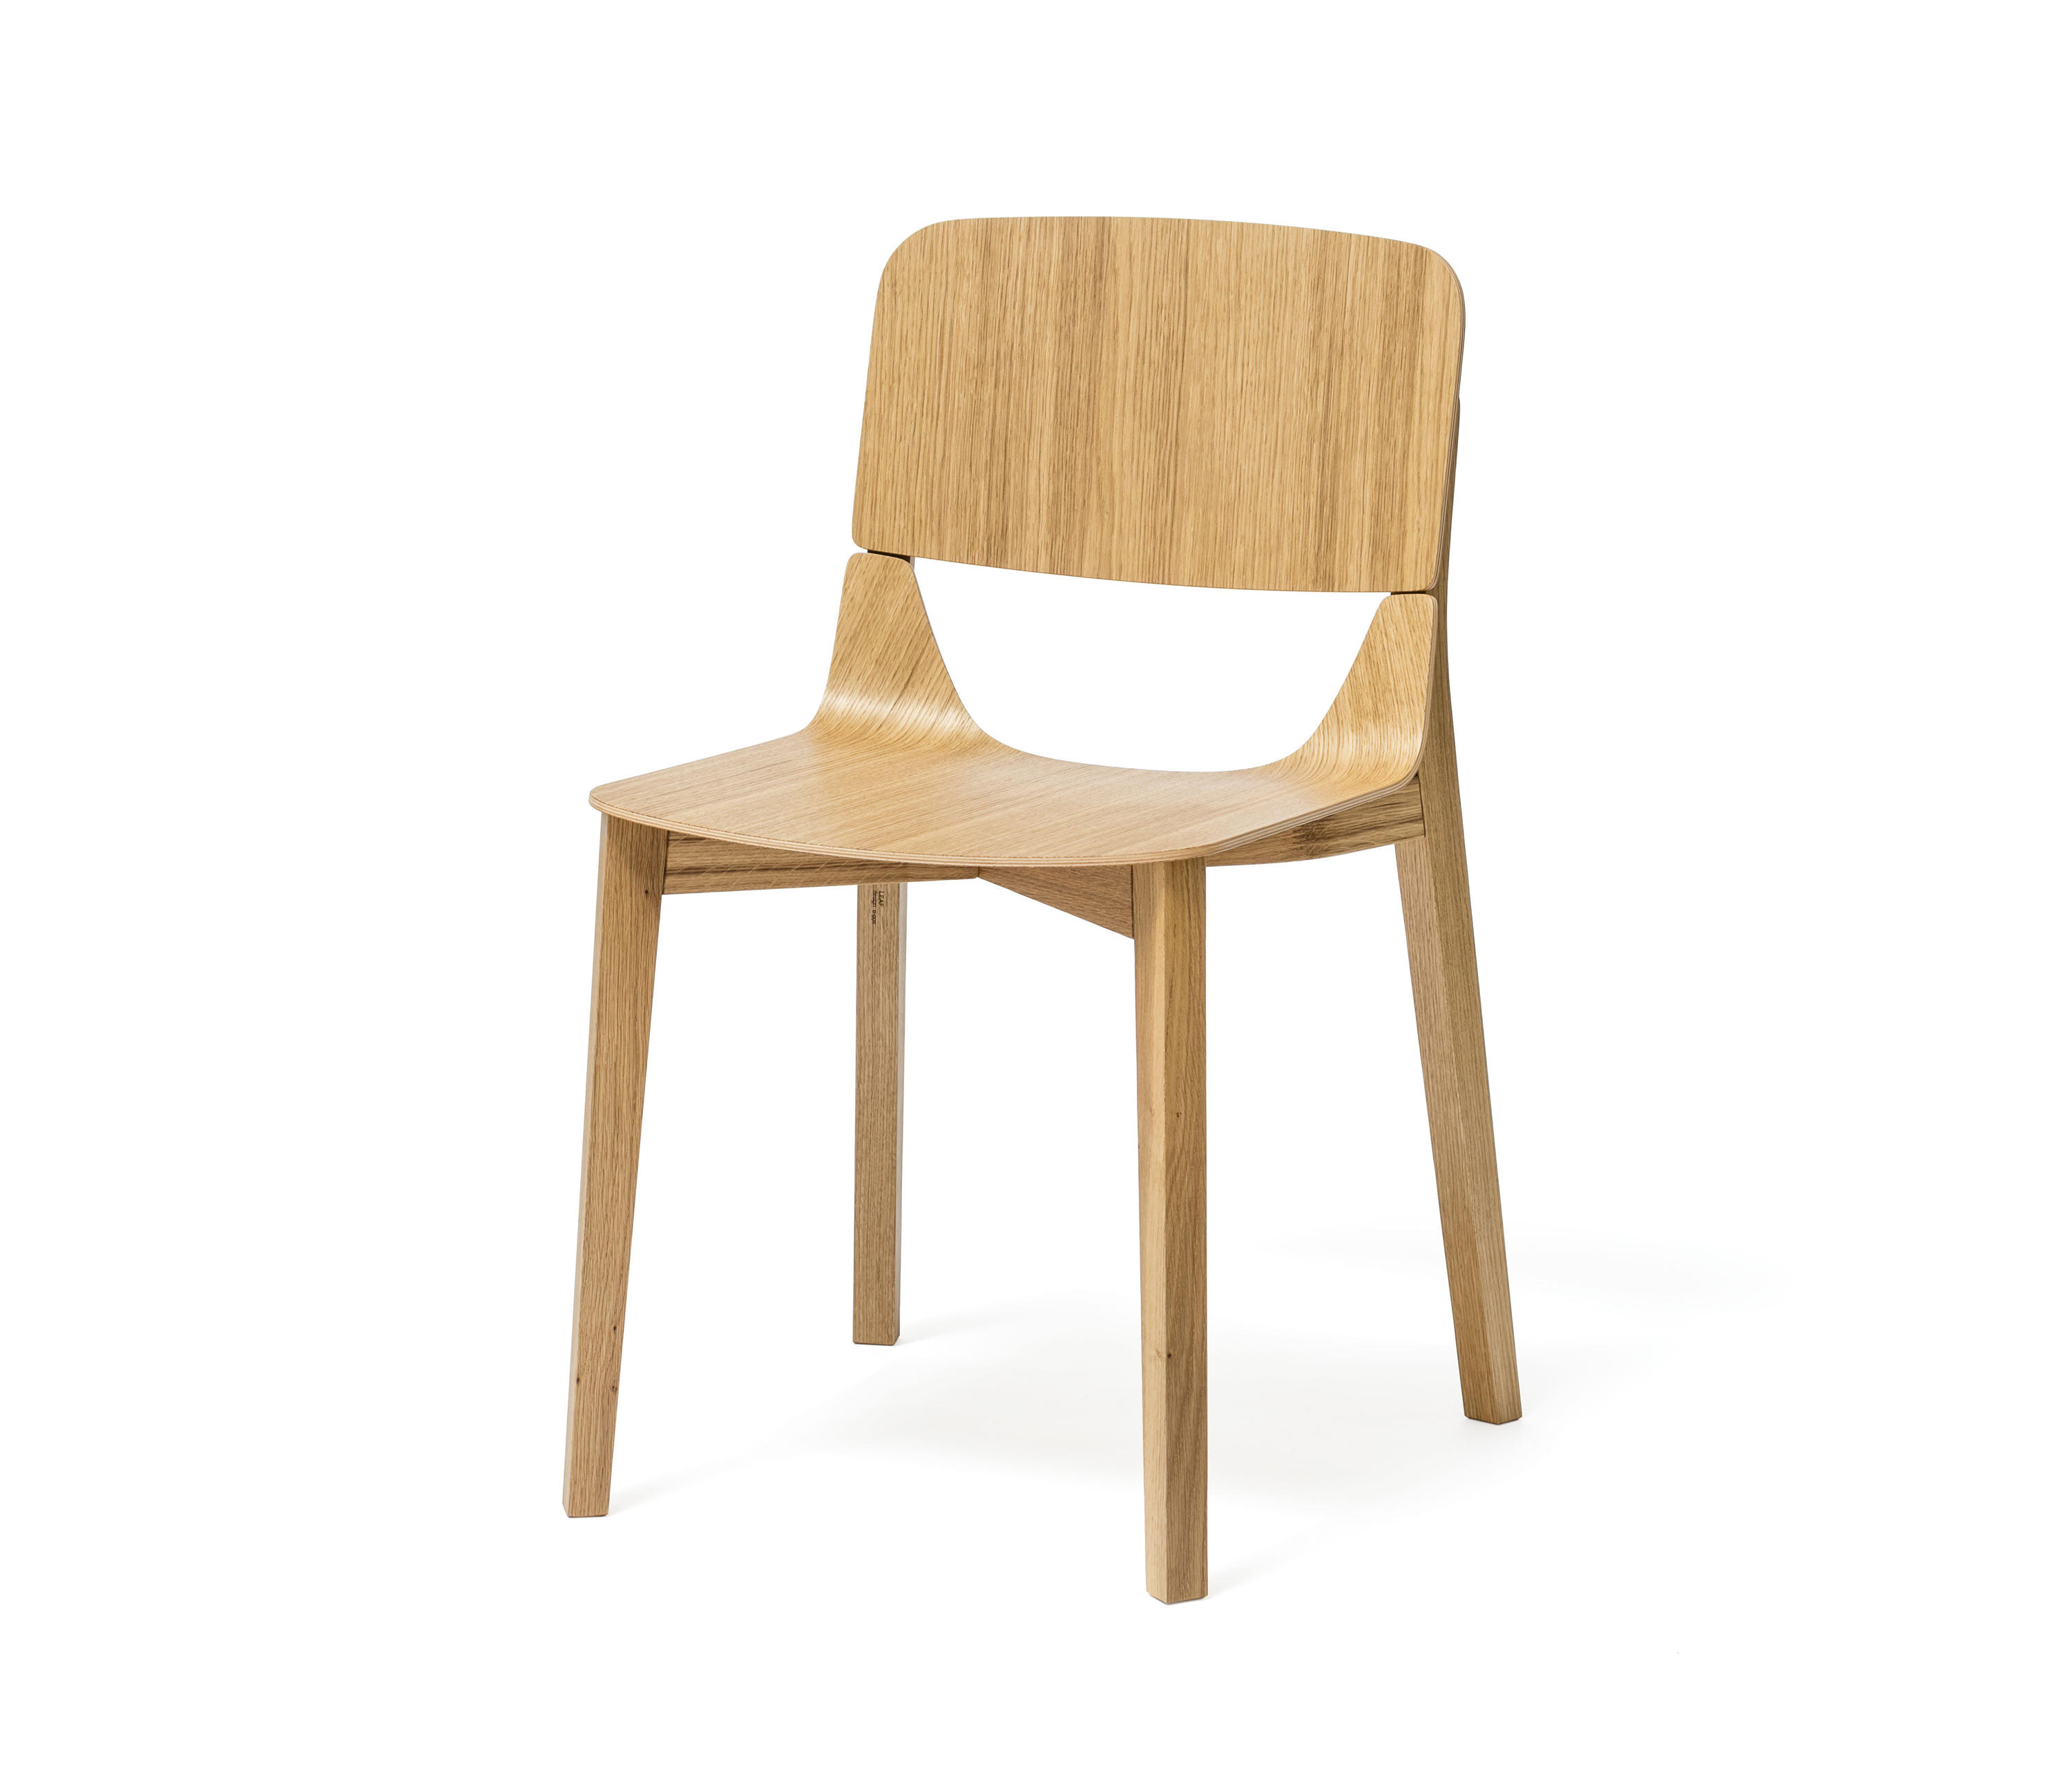 Leaf Chair by TON | Chairs ...  sc 1 st  Architonic & LEAF CHAIR - Chairs from TON | Architonic